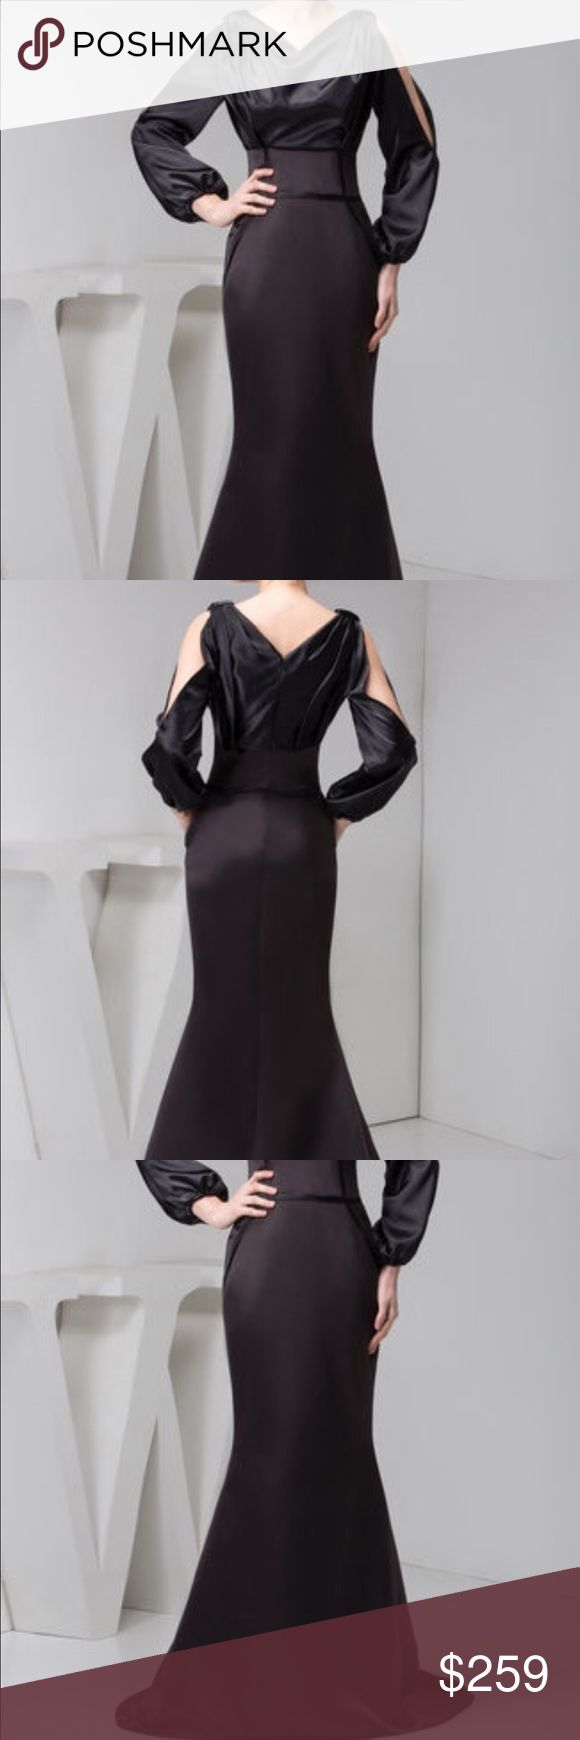 'Lovingly Missed' mermaid formal dress This hourglass-shaped formal dress, compliments with an elastic waist and and woven satin, built-in bra, and is fully lined on the inside to prevent the dress from flying up. Numerous sizes are available. Additional $14.99 for customization. Dresses